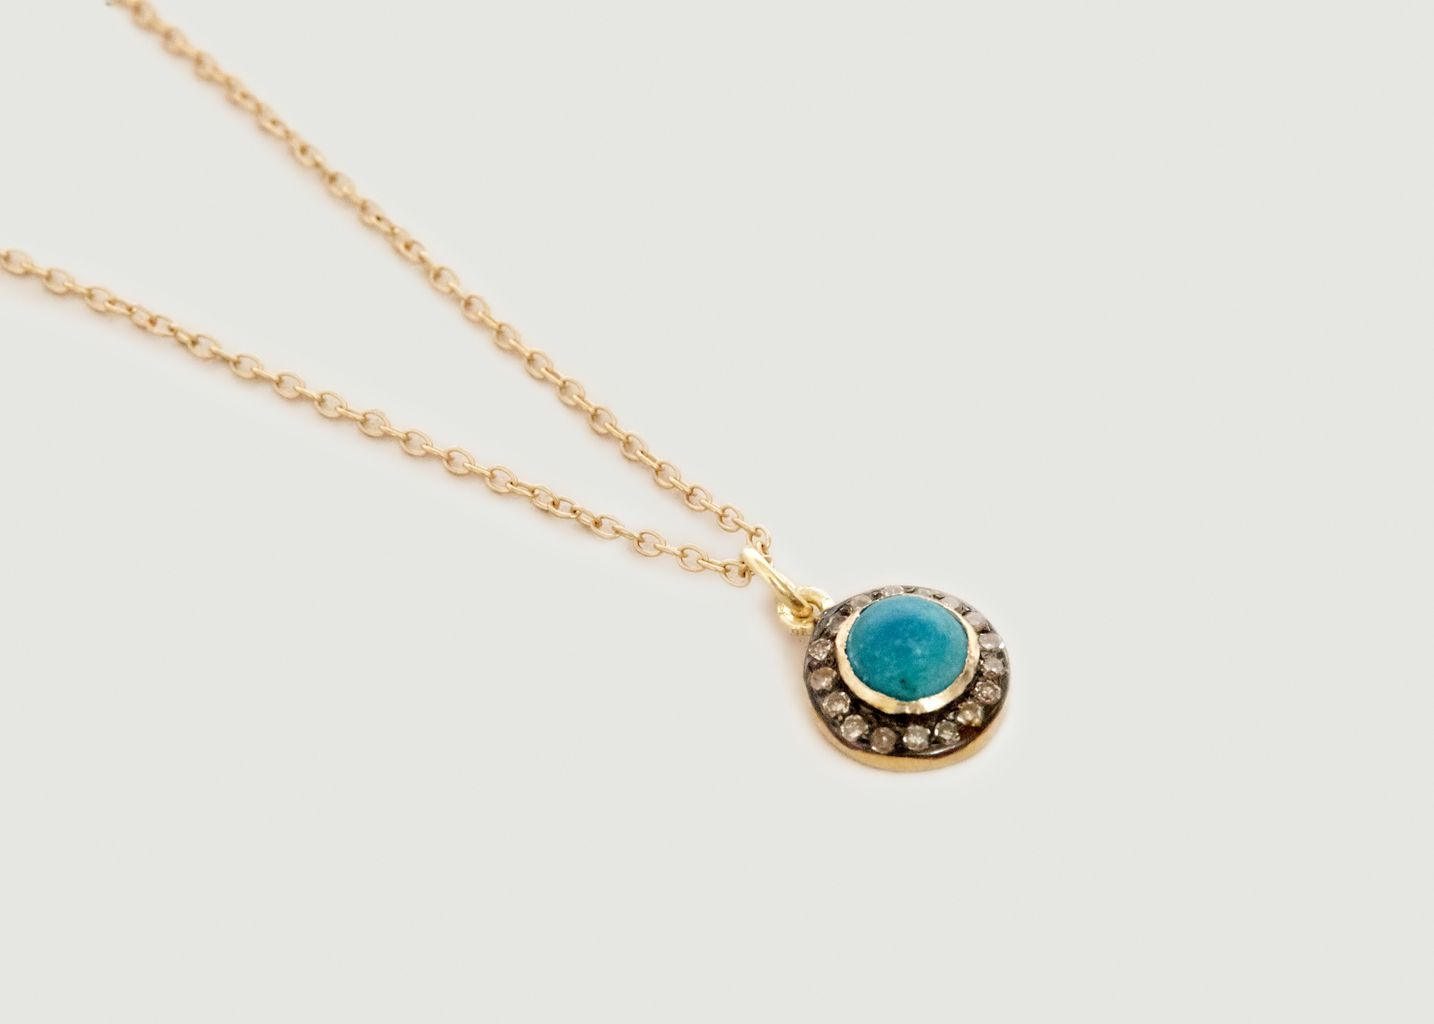 Collier Lapi Turquoise - 5 Octobre